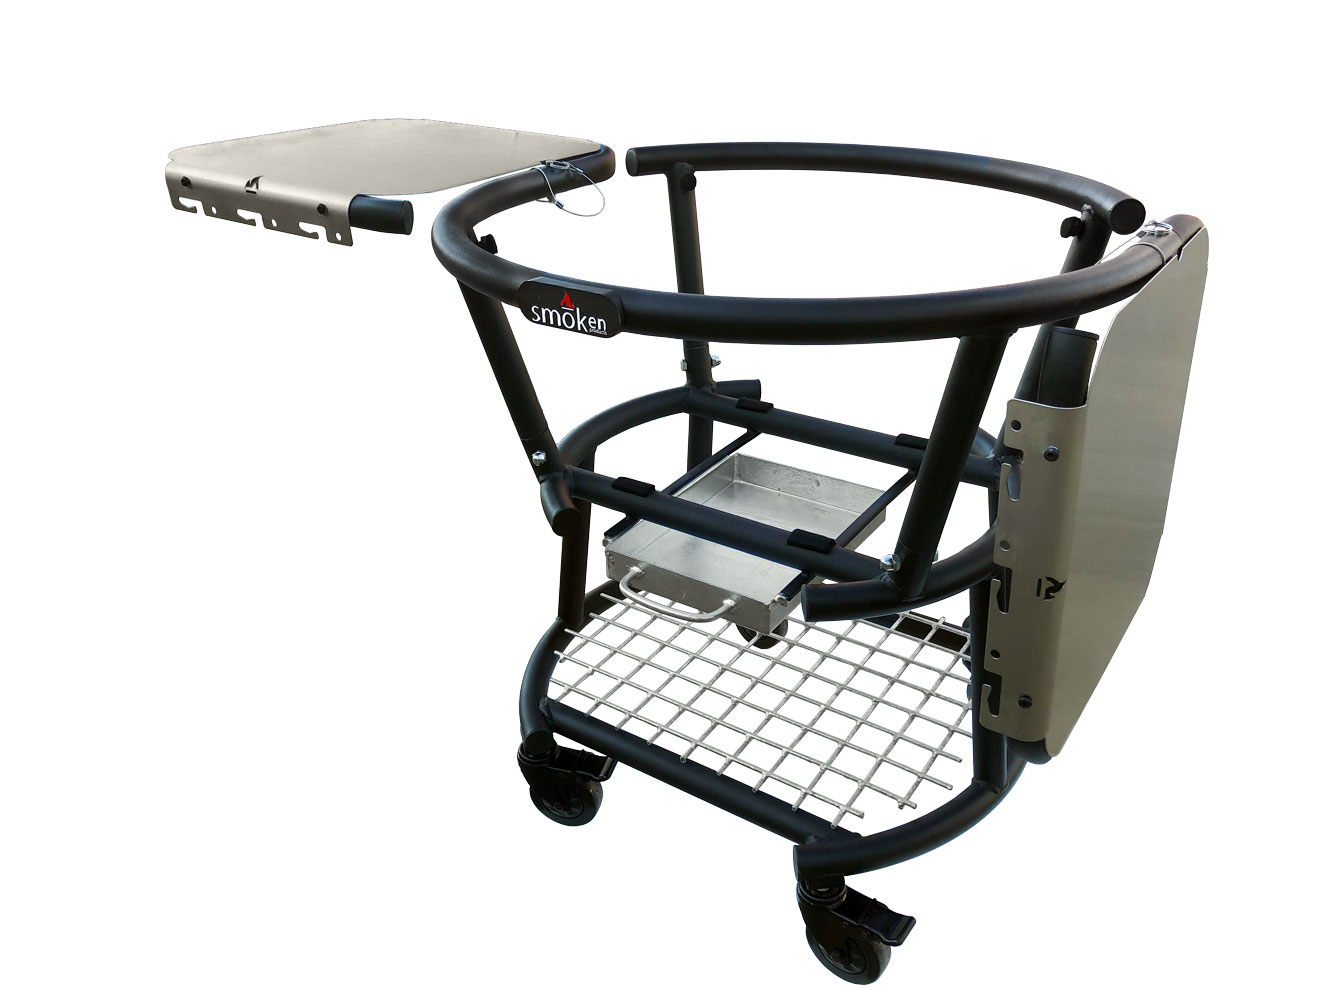 101538_XL-Cuna_Stand-Tables-1up1Down